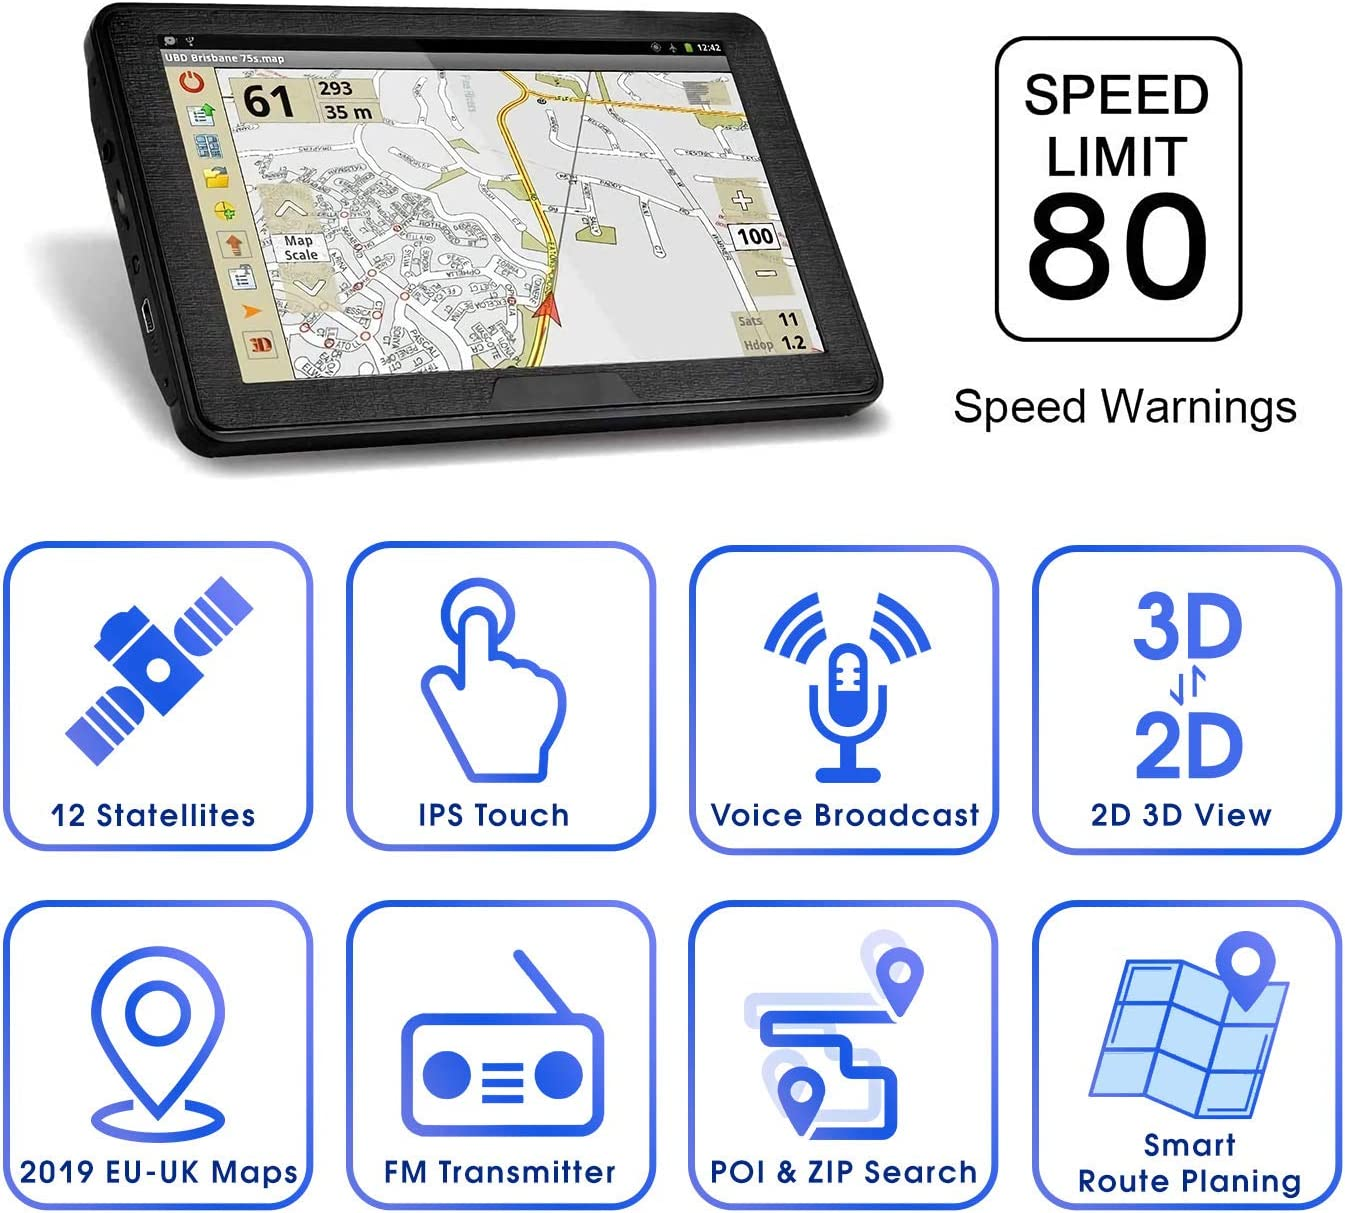 Free Upgrade Map for a Lifetime. Latest 2020 Map 7 Inch Touchscreen 8G 256M Navigation System with Voice Navigation System GPS Navigation for Car Truck